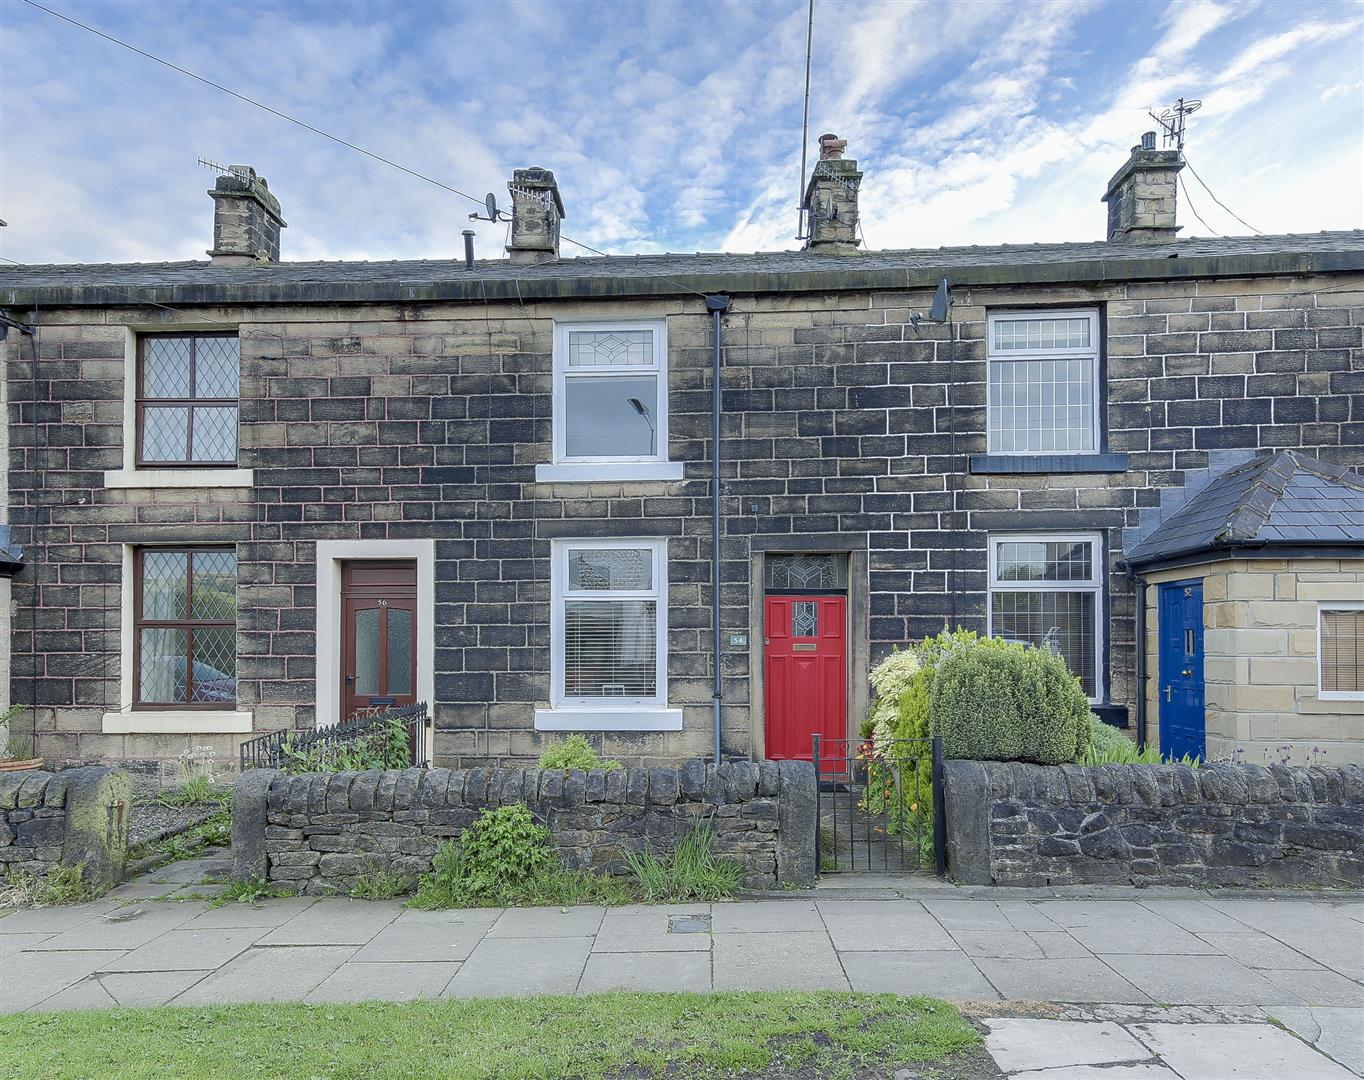 Garden Centre: 2 Bedroom Terraced House For Sale, Nuttall Lane, Bury